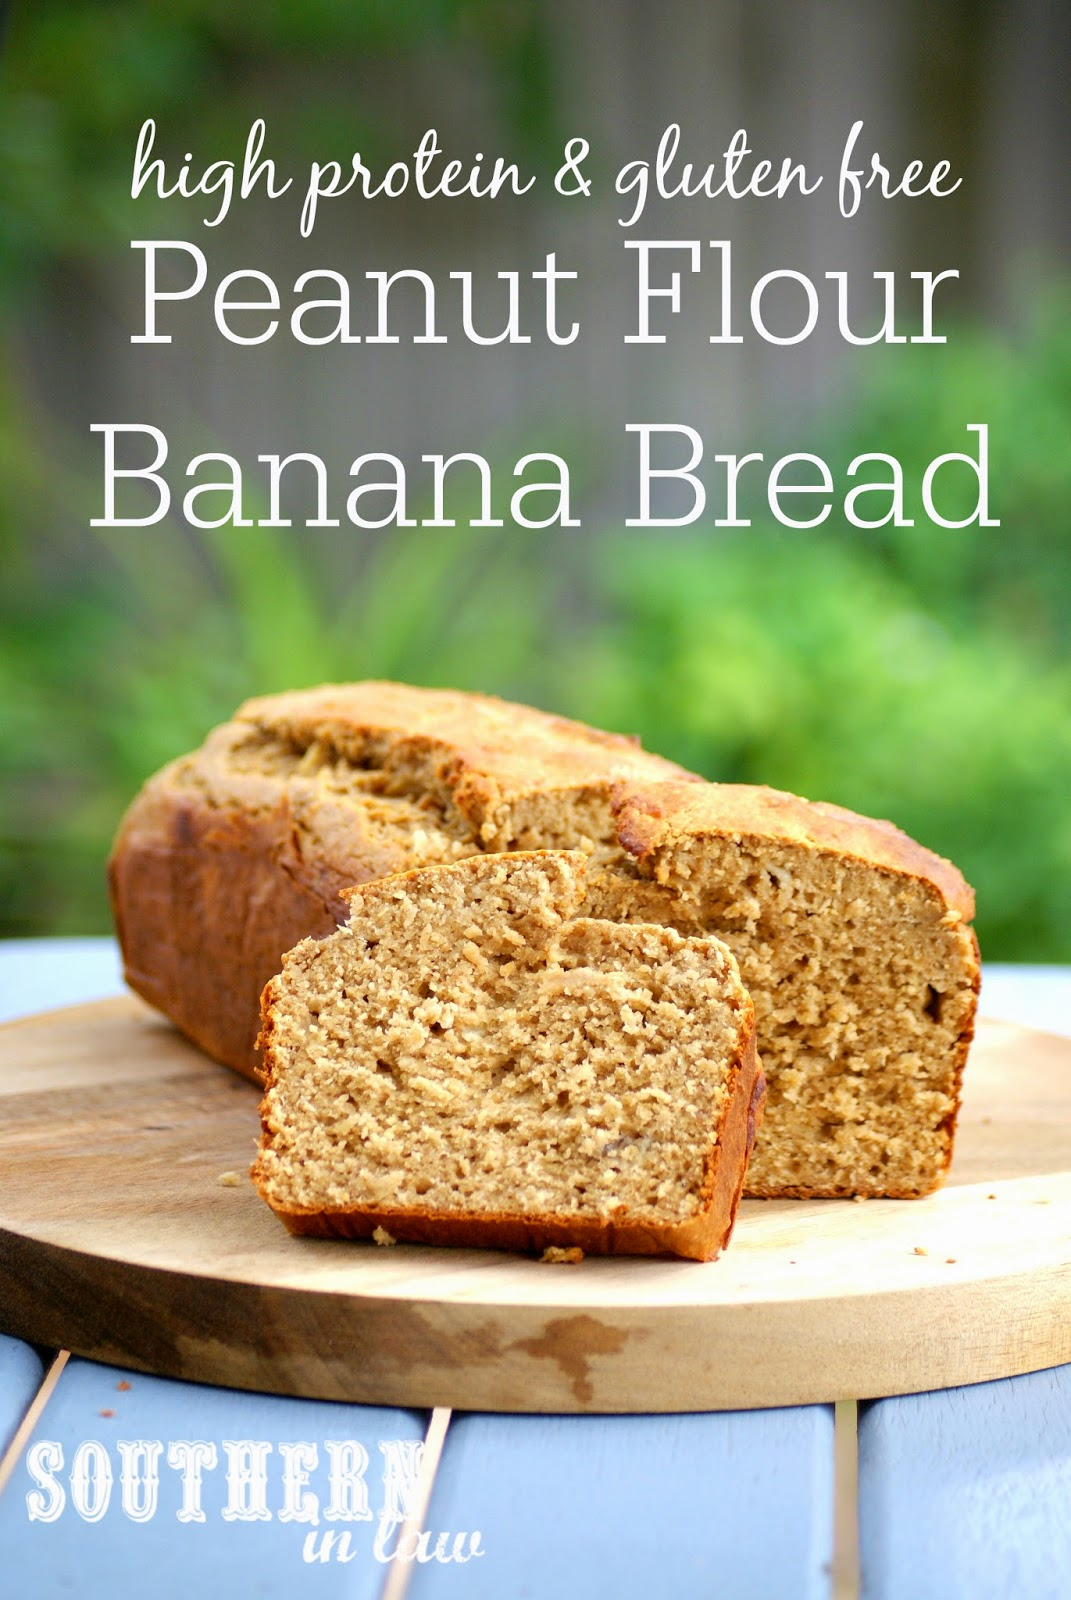 Healthy High Protein Banana Bread Recipe - low fat, gluten free, healthy, high protein, sugar free, freezable recipe, freezer recipe